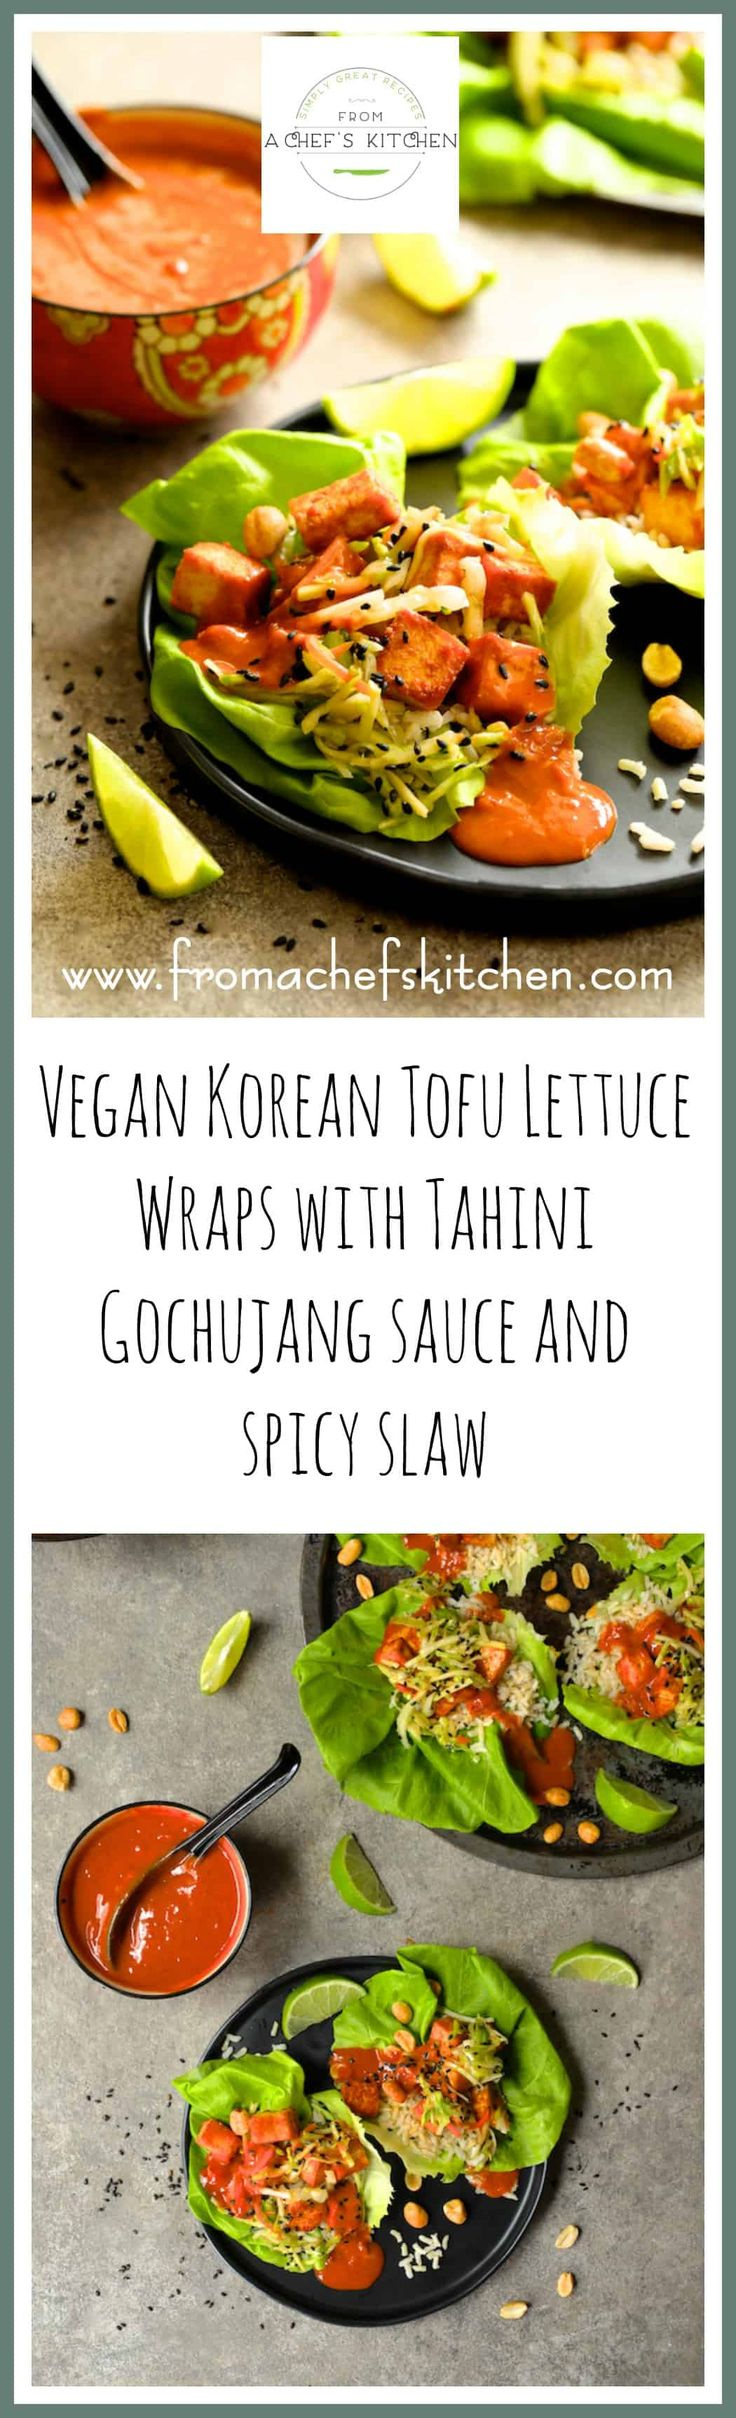 Vegan Korean Tofu Lettuce Wraps with Tahini Gochujang Sauce and Spicy Slaw are the fun, flavorful and healthful way to get your Korean food fix!     via @chefcarolb